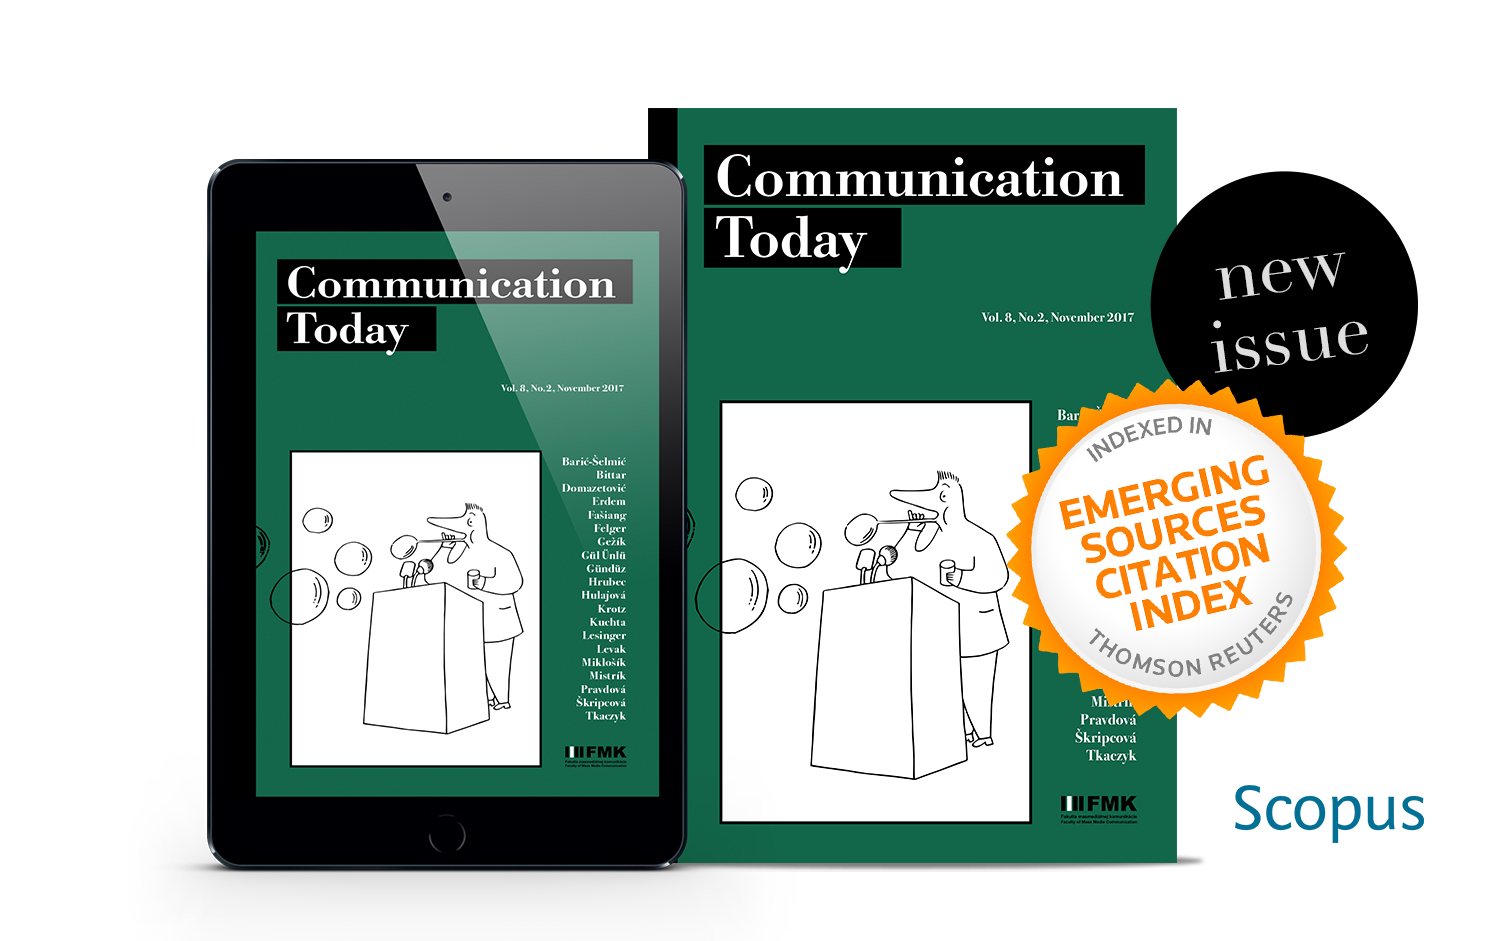 Cover: Communication Today no. 1, vol. 8